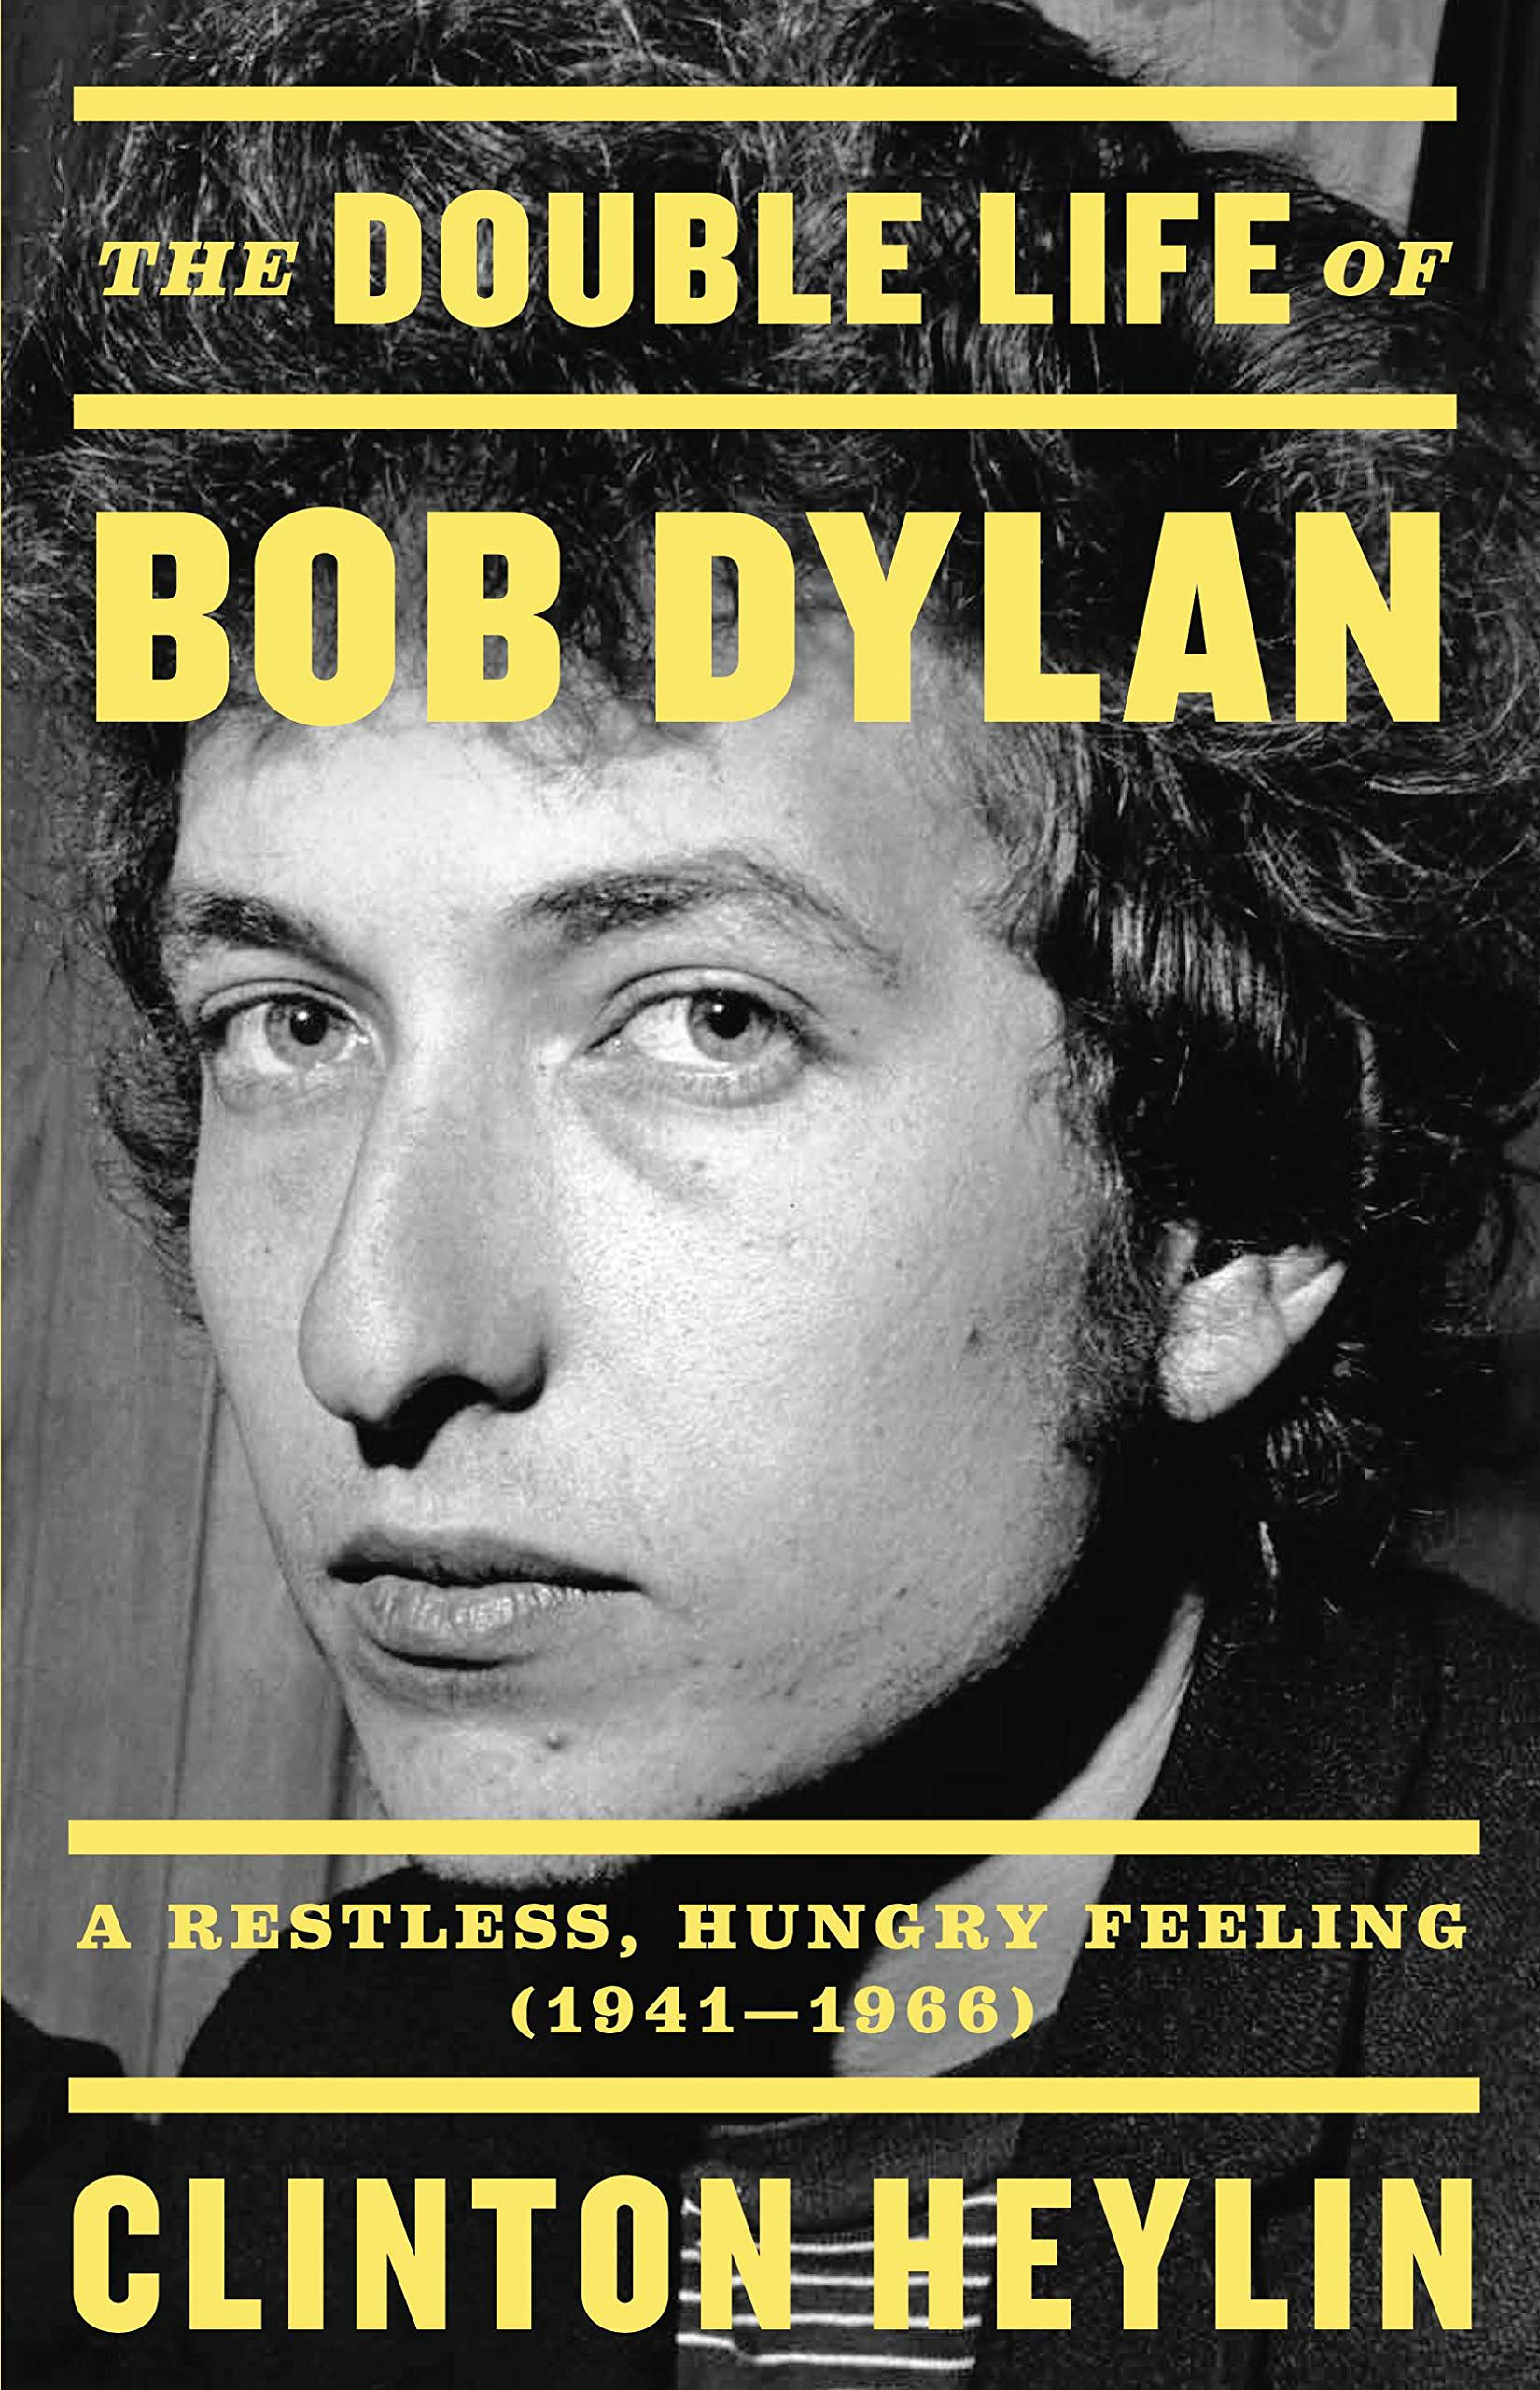 The Double Life of Bob Dylan: A Restless, Hungry Feeling, 1941-1966: Heylin, Clinton: 9780316535212: Amazon.com: Books